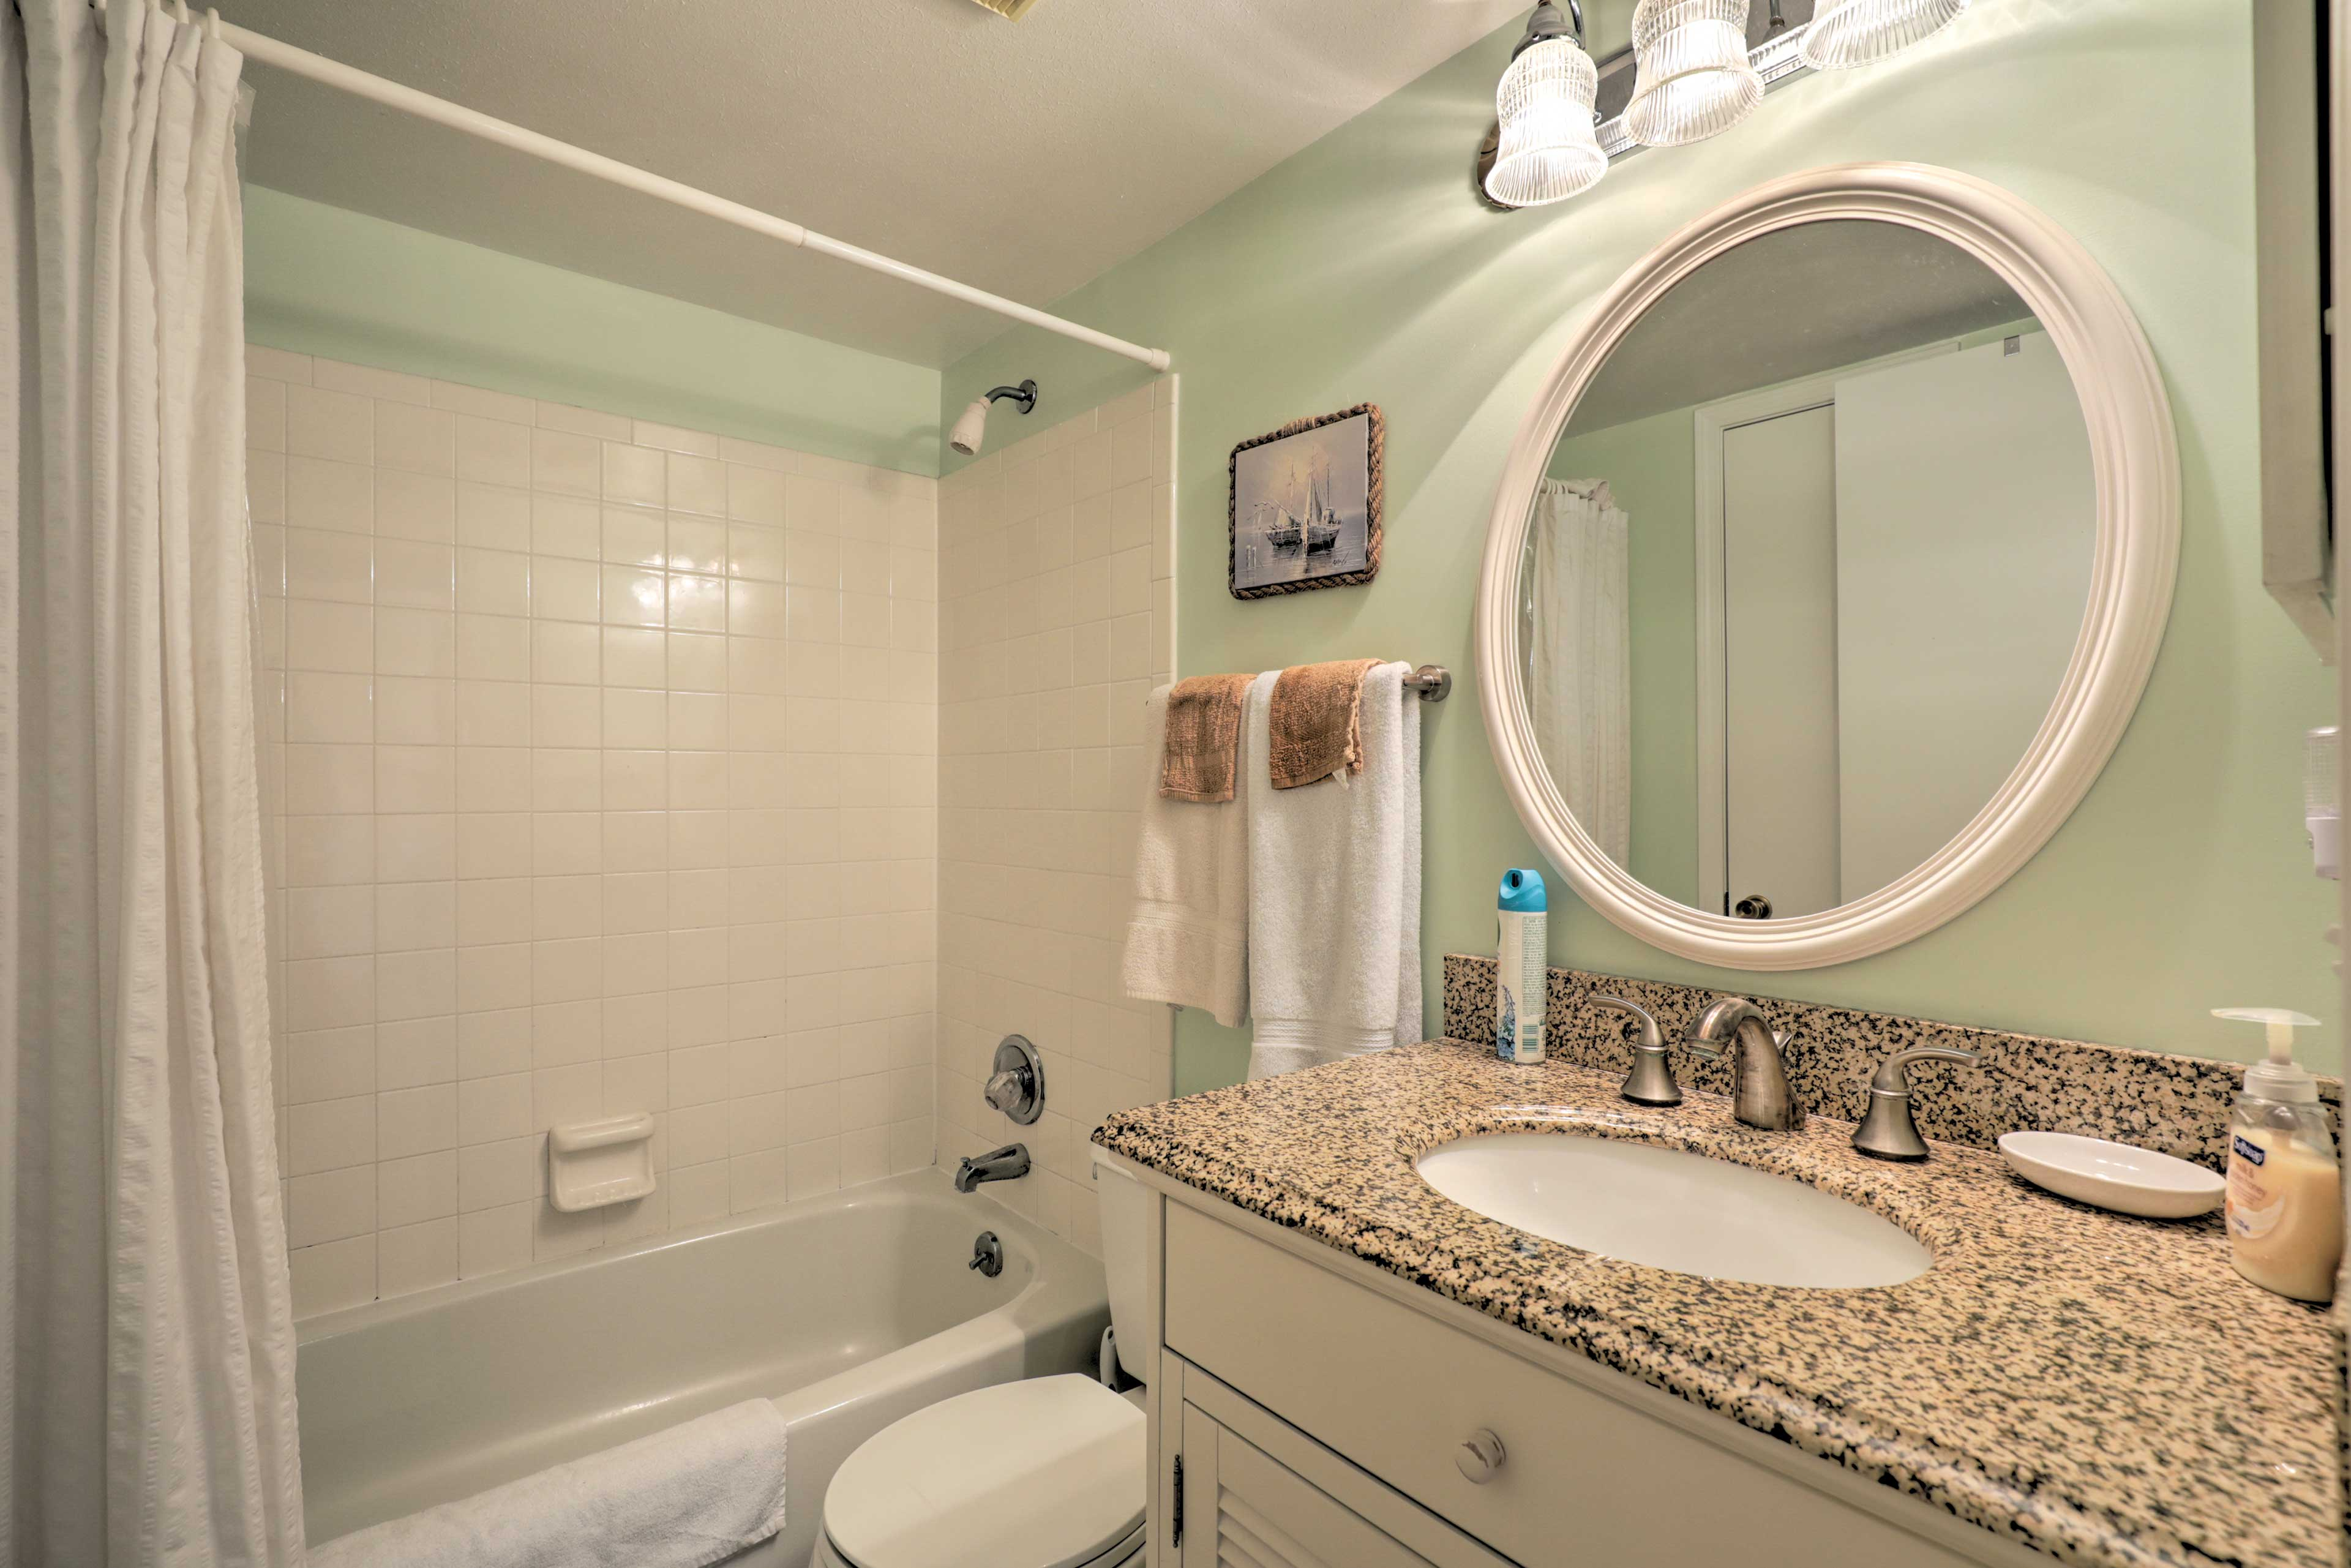 Rinse off in the shower/tub combo in the second bathroom.